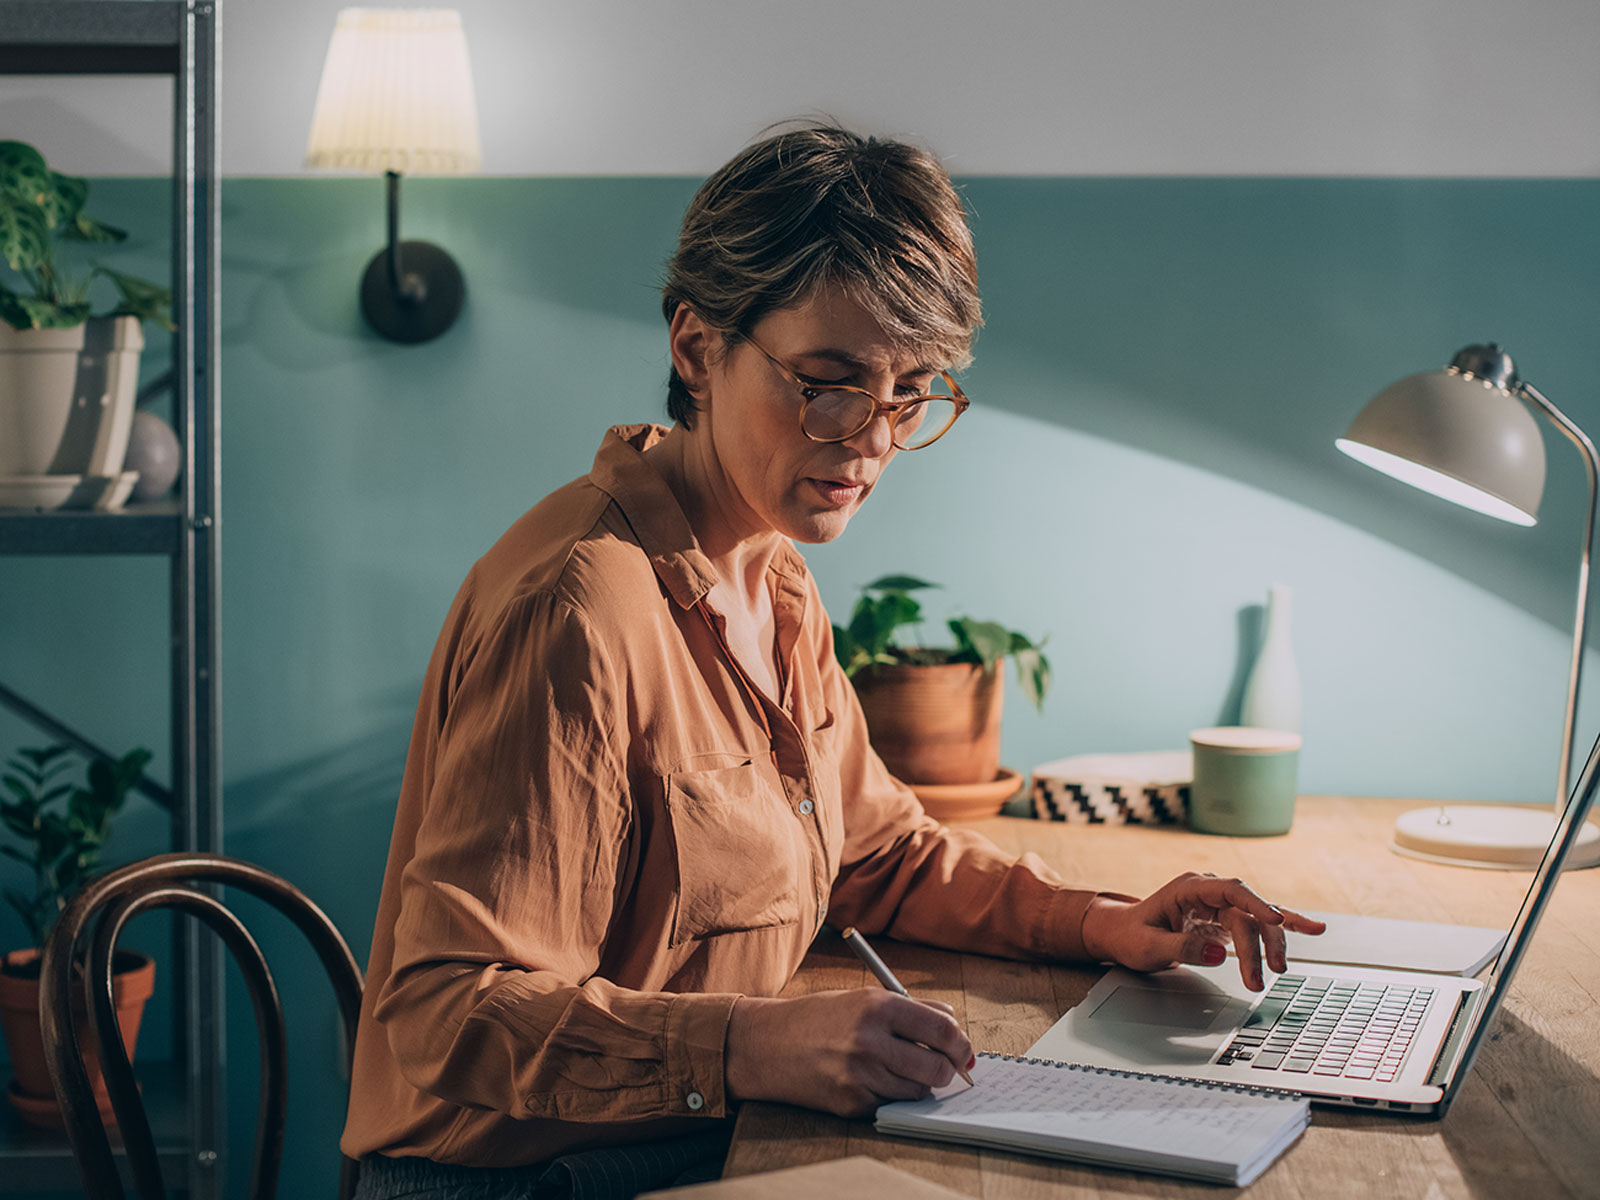 Woman working at her desk in front of a laptop computer